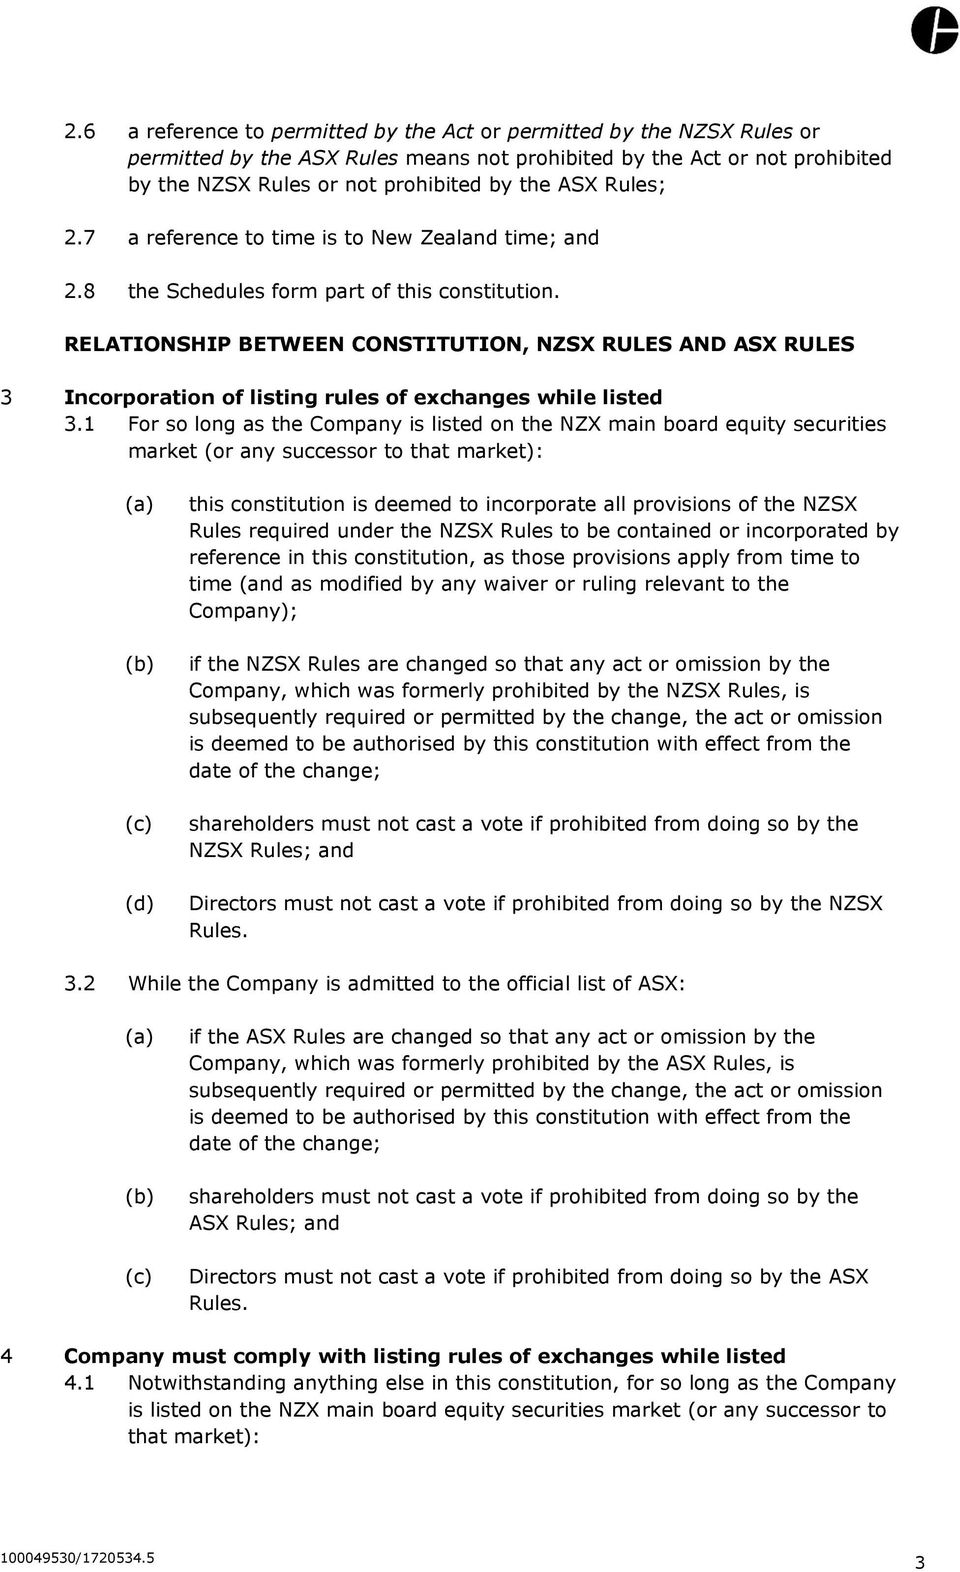 RELATIONSHIP BETWEEN CONSTITUTION, NZSX RULES AND ASX RULES 3 Incorporation of listing rules of exchanges while listed 3.